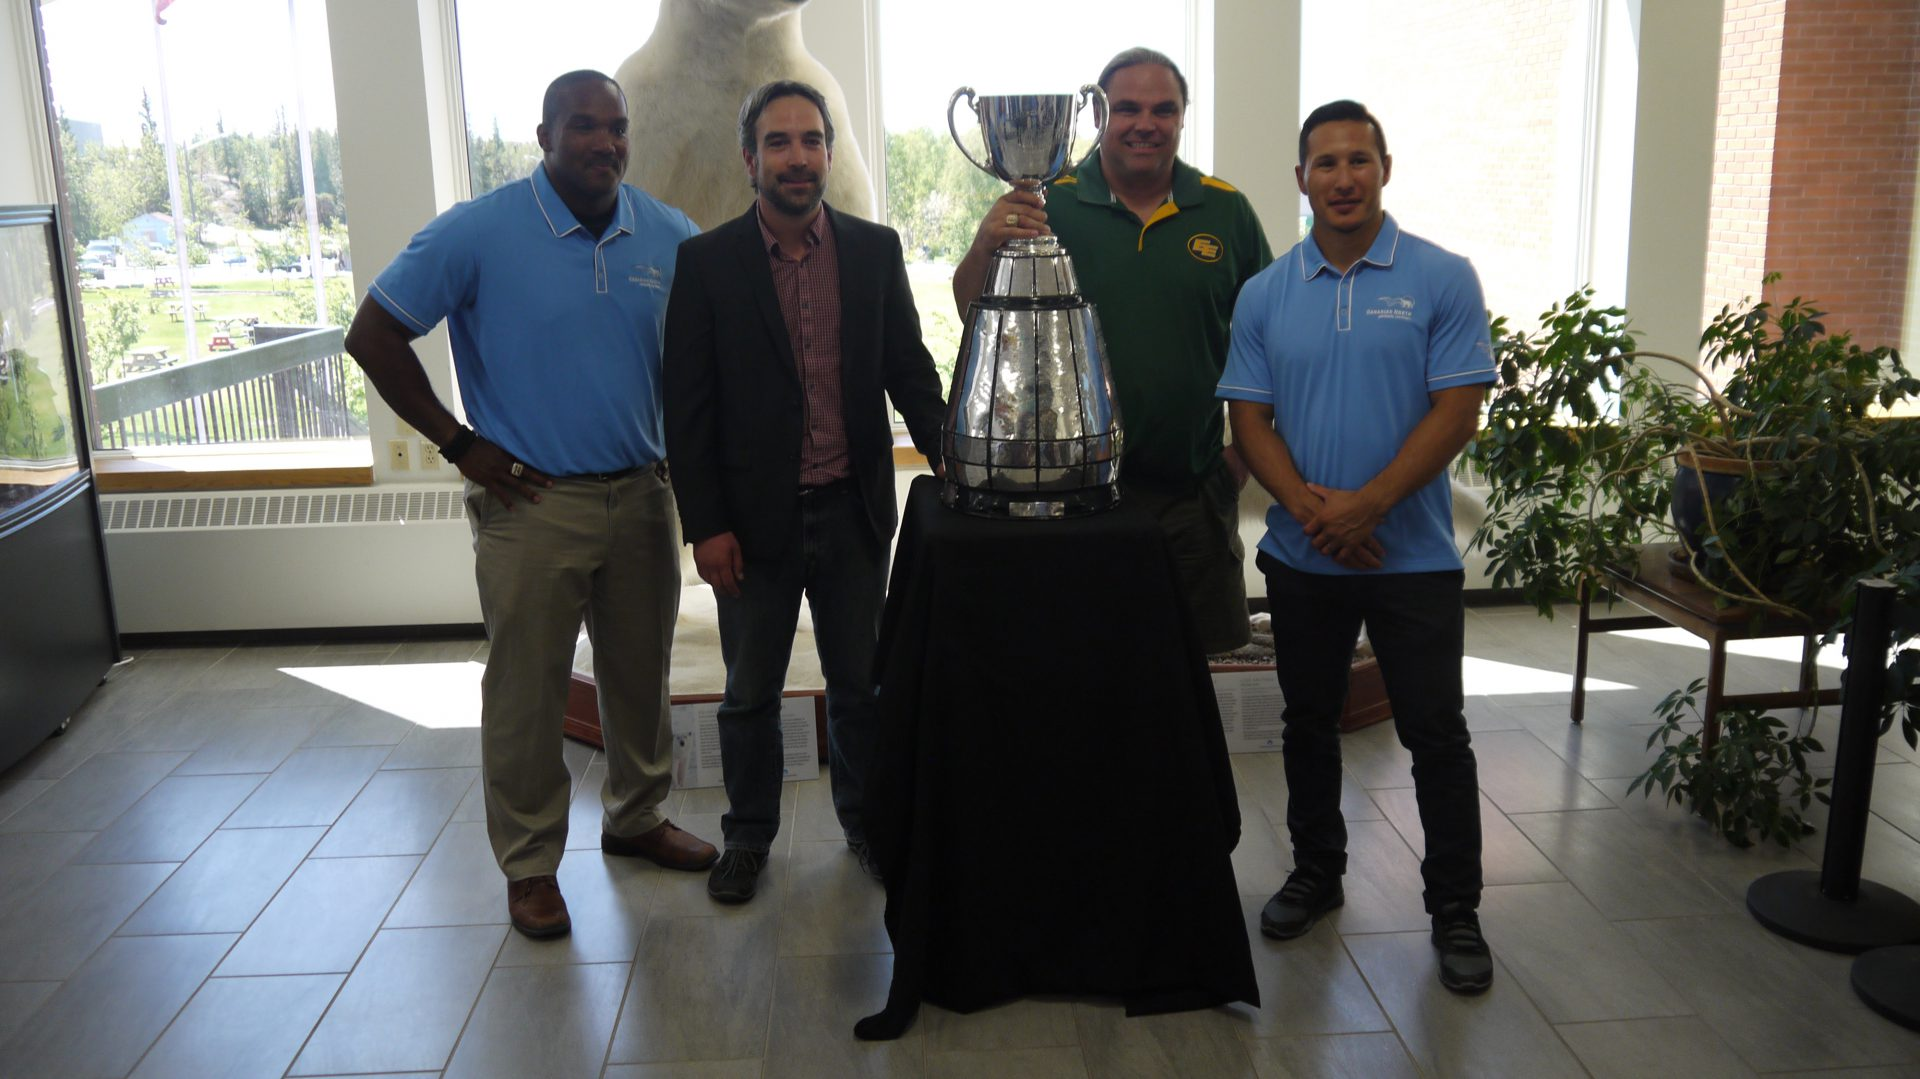 From left to right: Eskimos alumni Rob Brown, Yellowknife mayor Mark Heyck, Eskimos alumni Jed Roberts and New Jersey Devils forward Jordin Tootoo